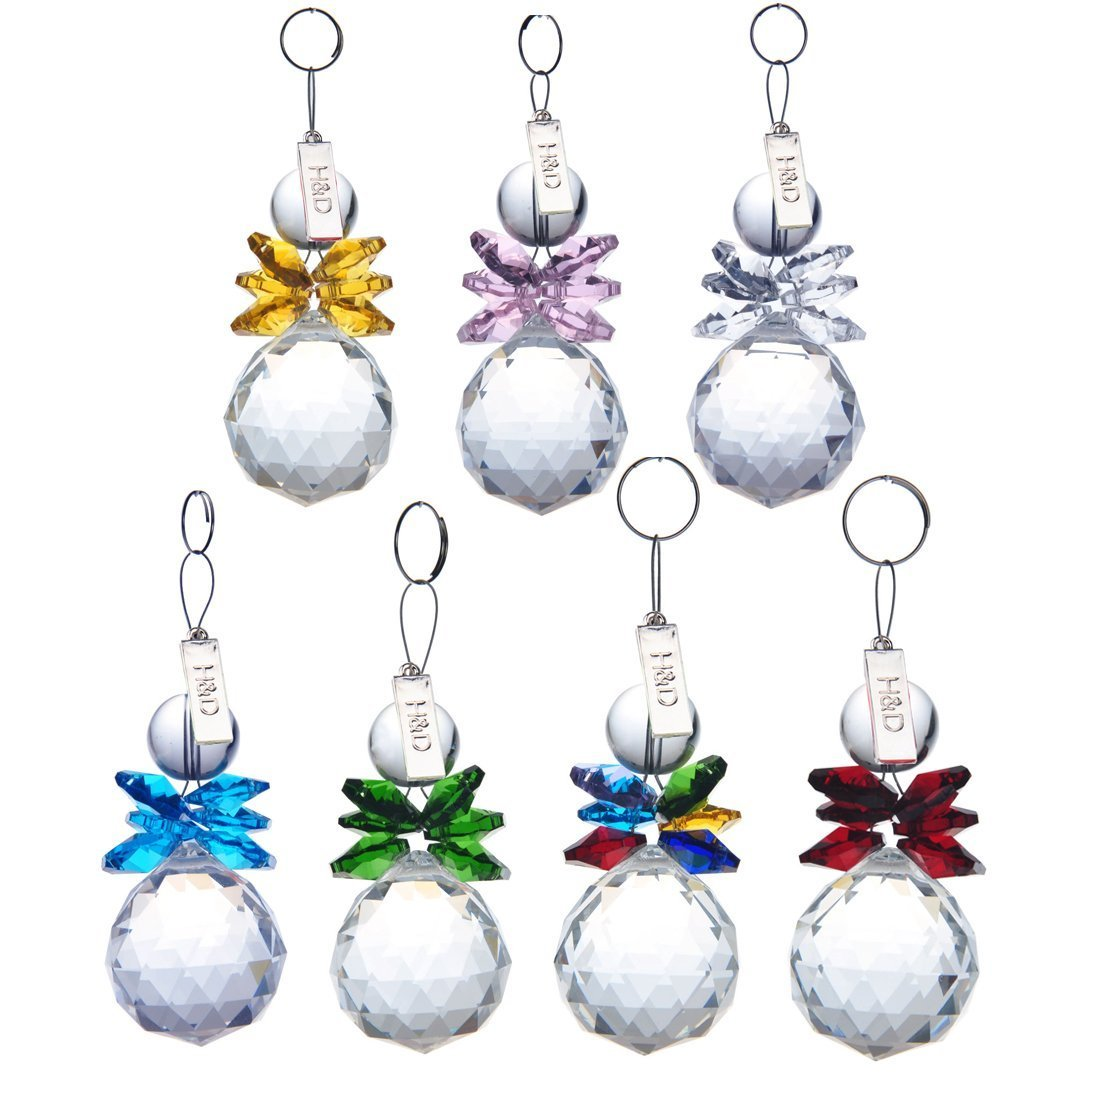 H&D 7pcs Clear Crystal Ball Pendant Hanging Suncatcher Handcrafts Christmas Glass Ornaments